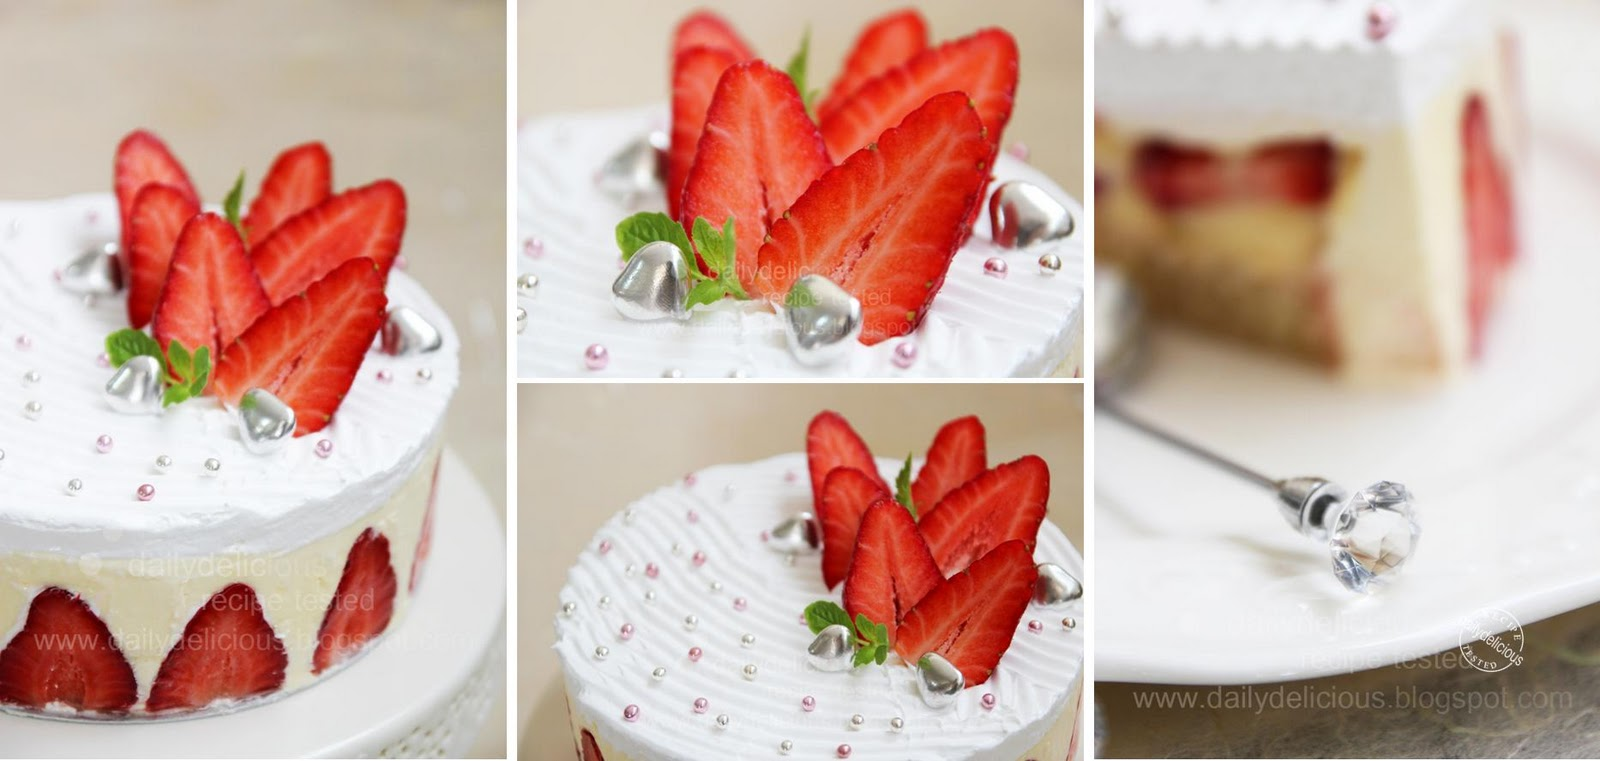 Beautiful Strawberry Cake Images : dailydelicious: Fraisier: Beautiful French Strawberry Cake